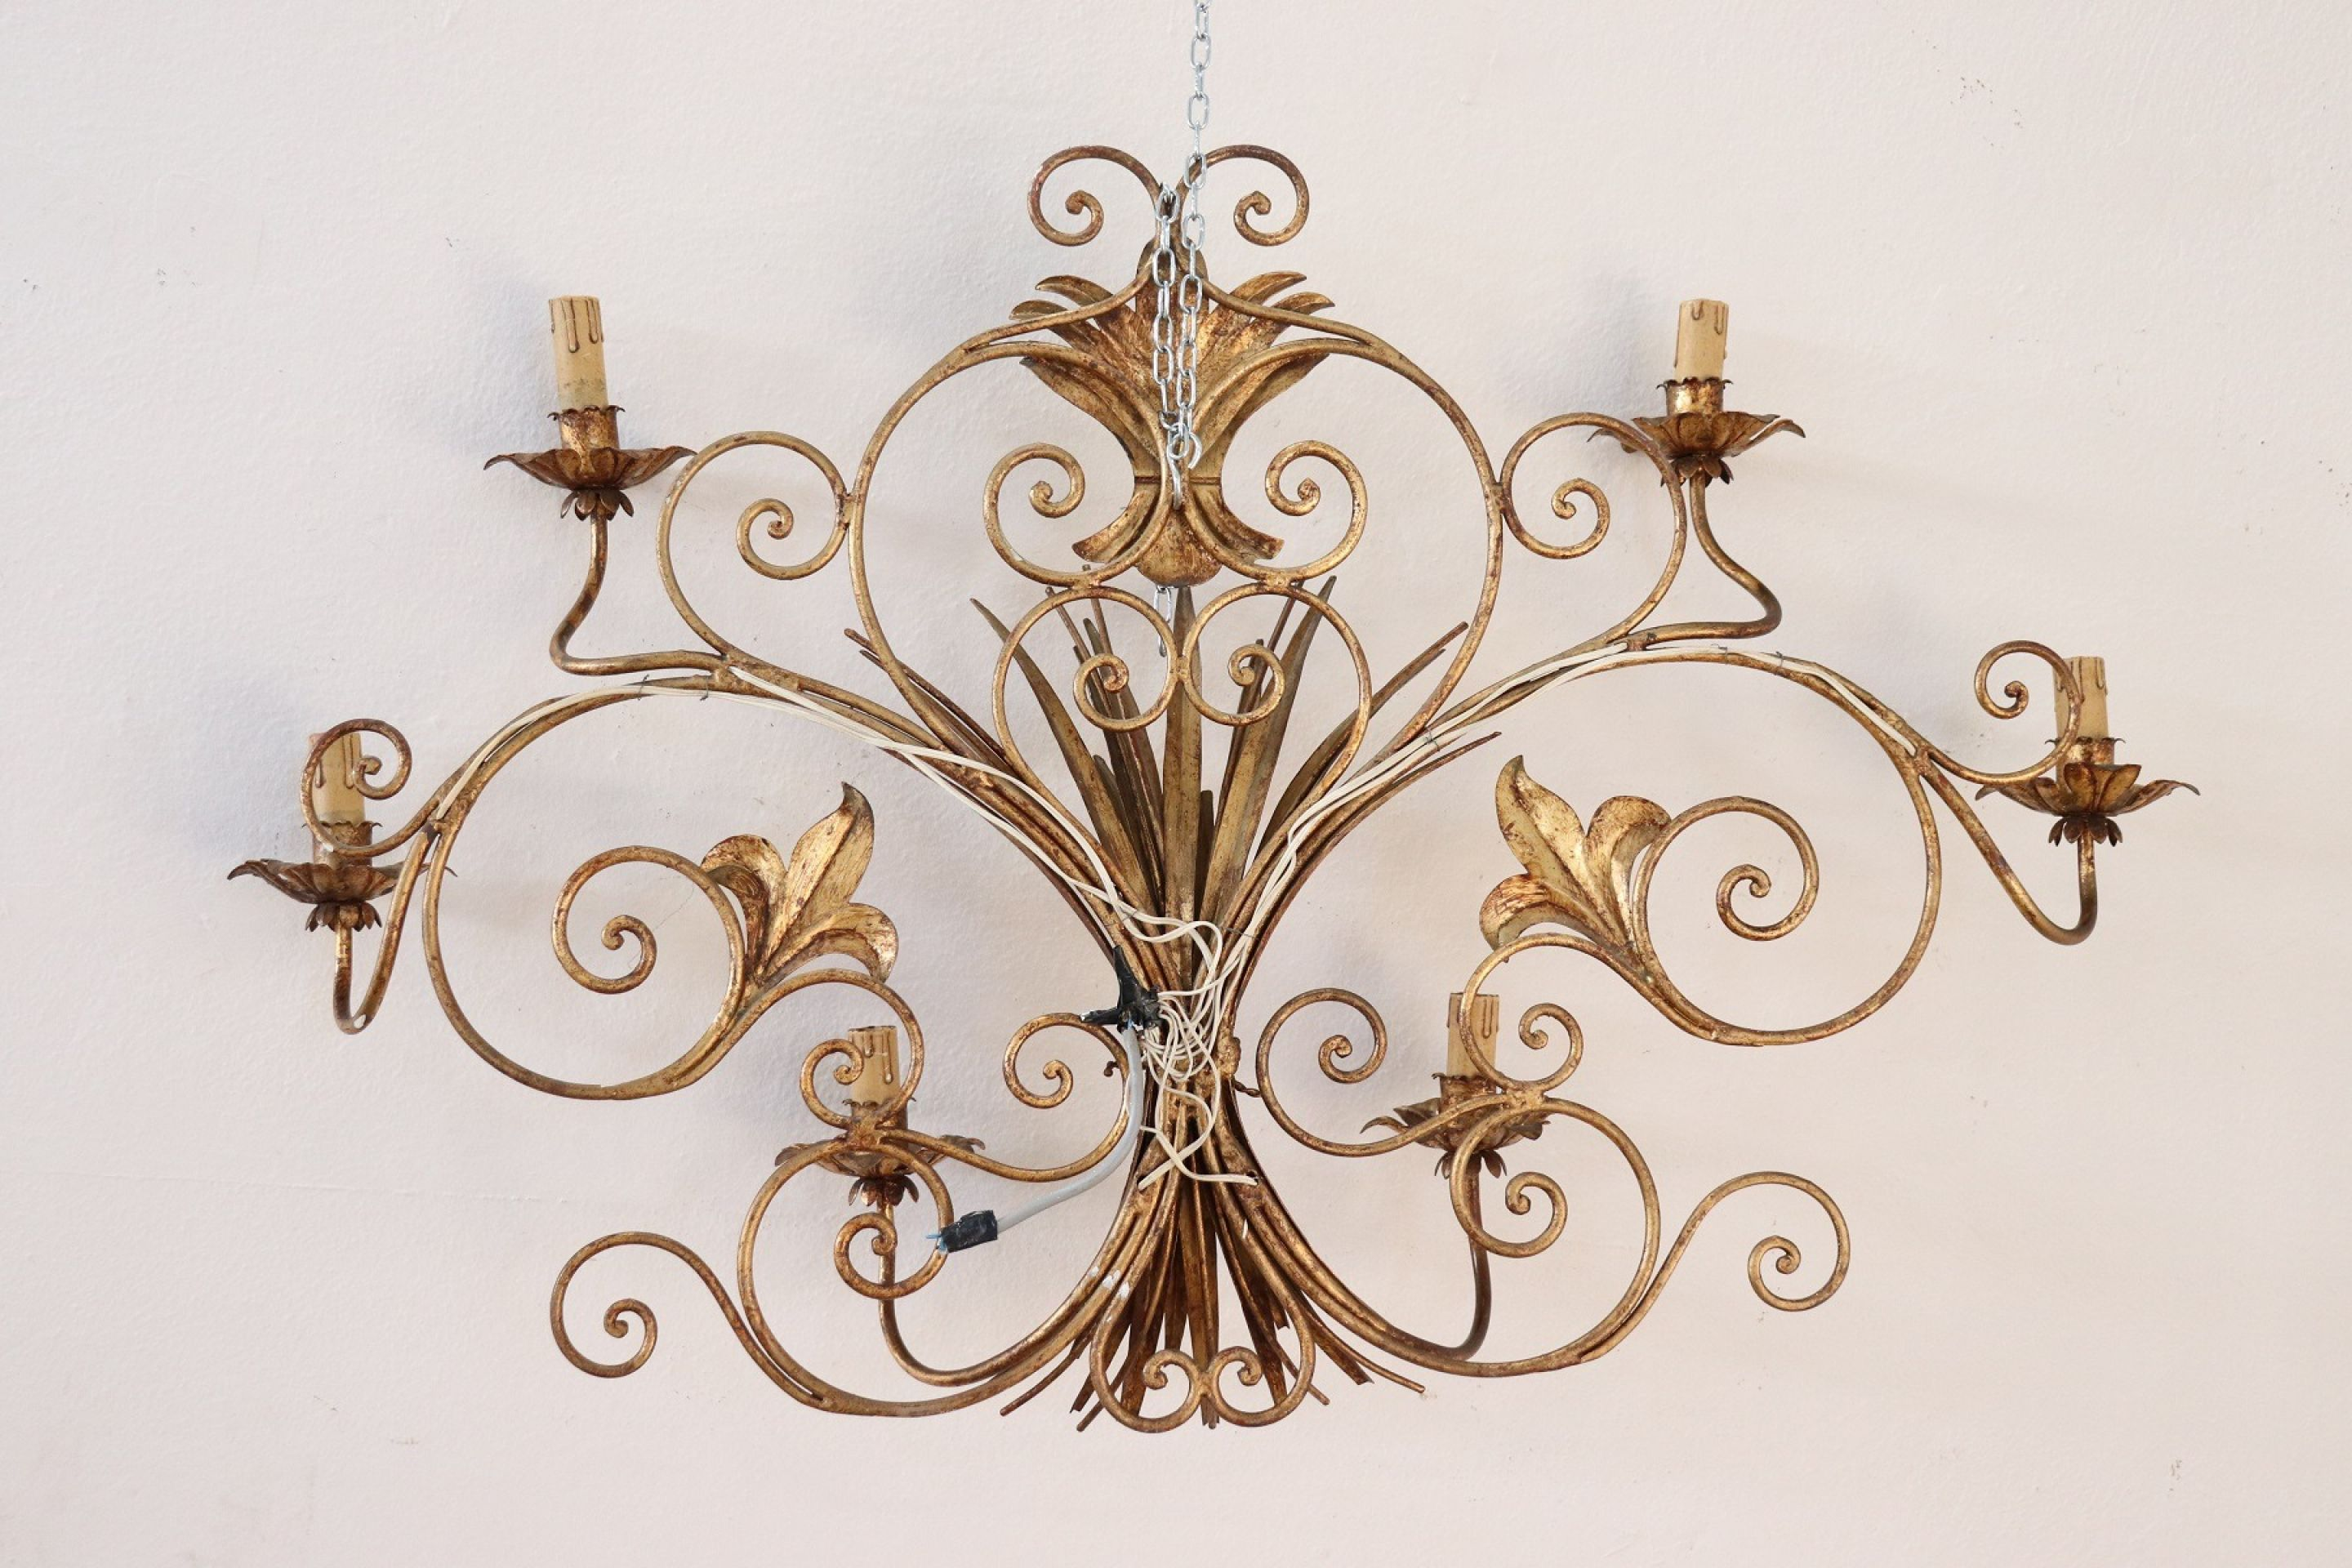 20th Century Italian Forged and Golden Iron Wall Light or Sconces